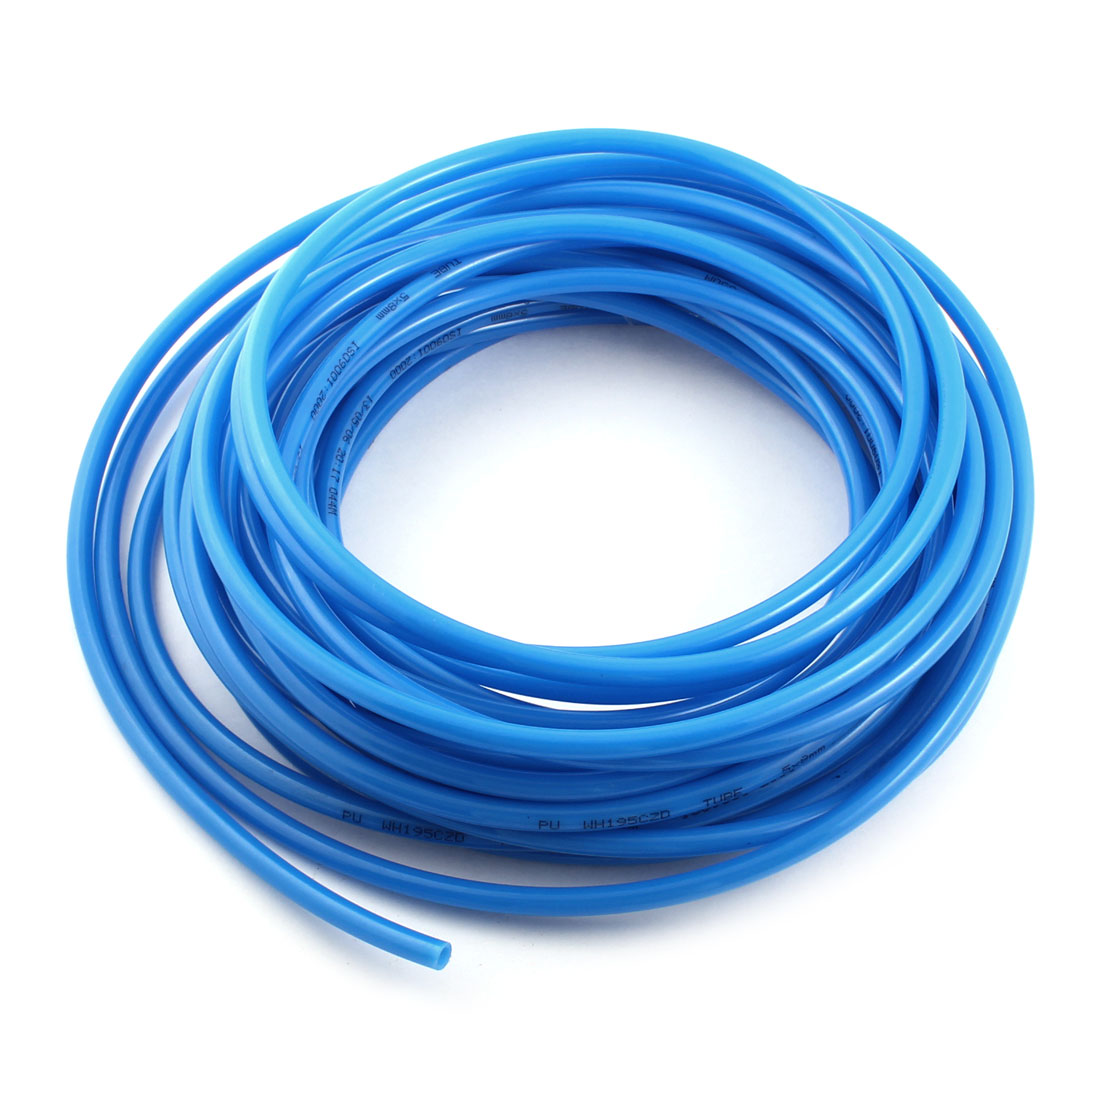 ФОТО UXCELL Product Keywords 15 Meter 50Ft Blue Polyurethane Pu Air Tubing Hose Pipe 8Mmx5mm